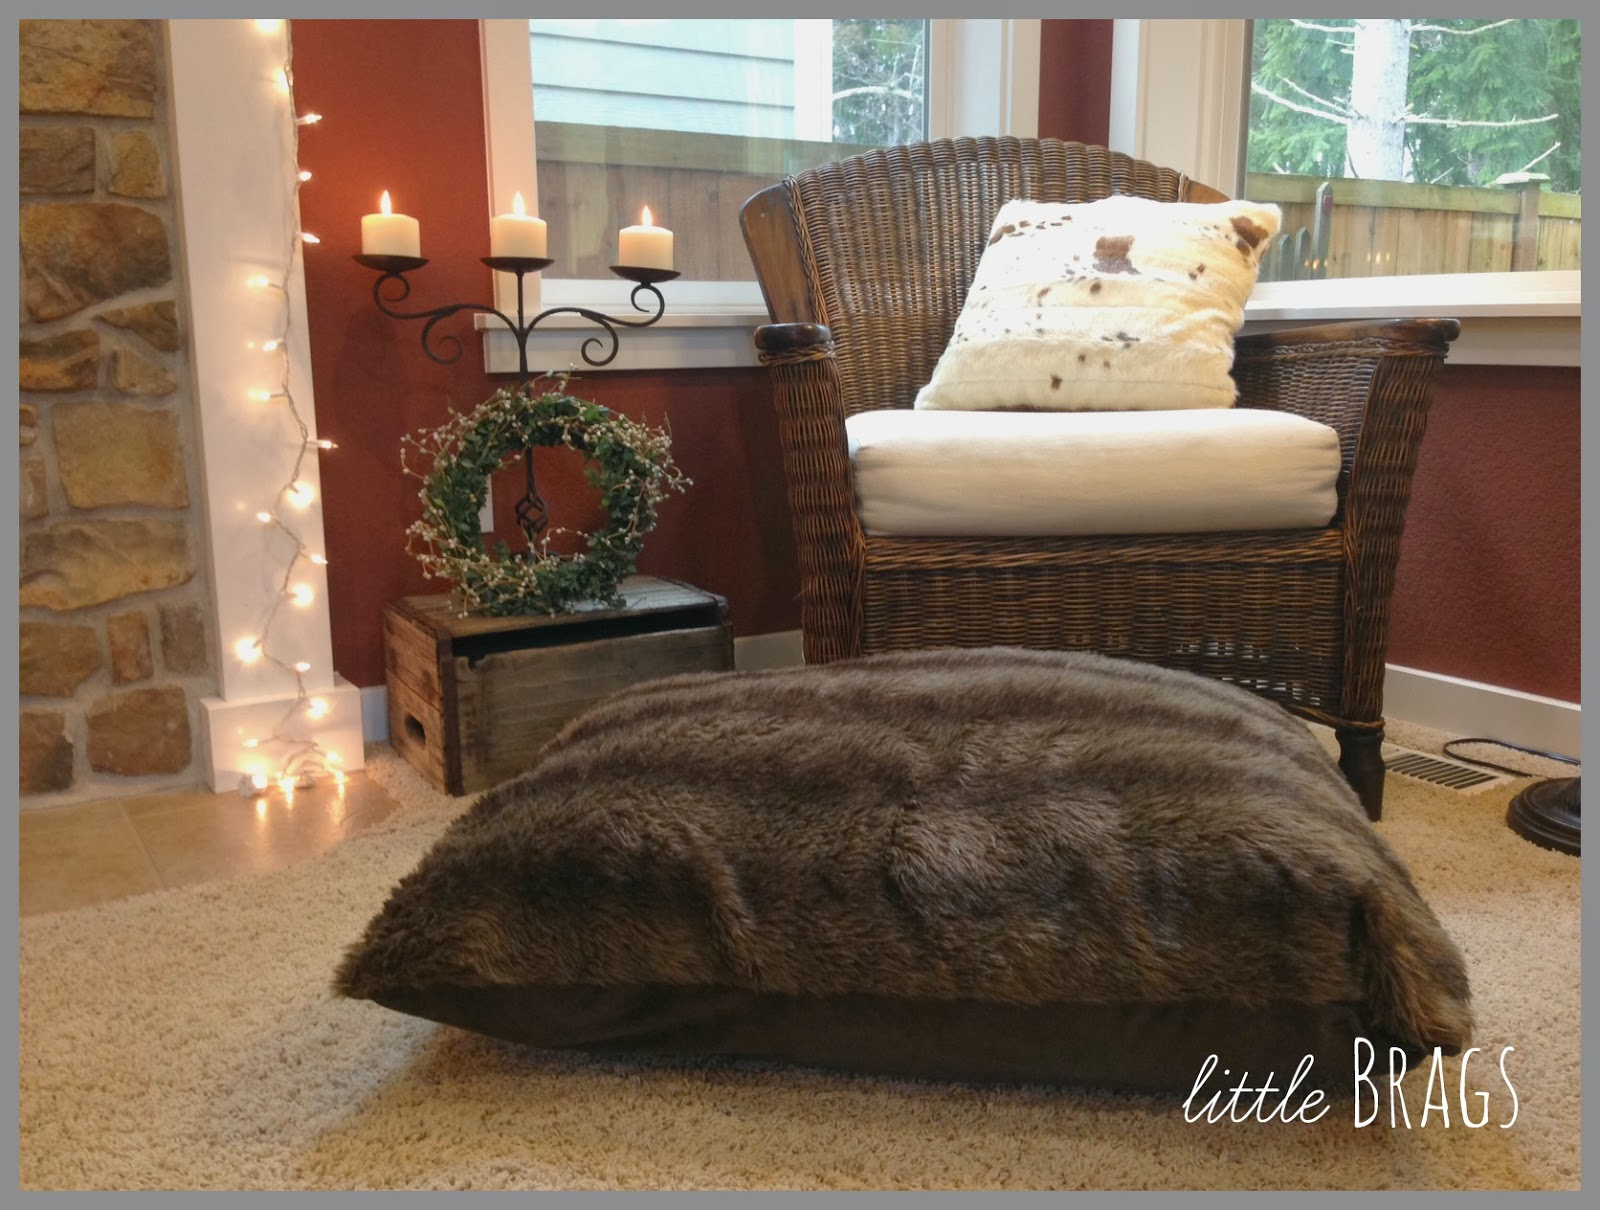 Little Brags: My Newest Crush -- Furs and Cowhides